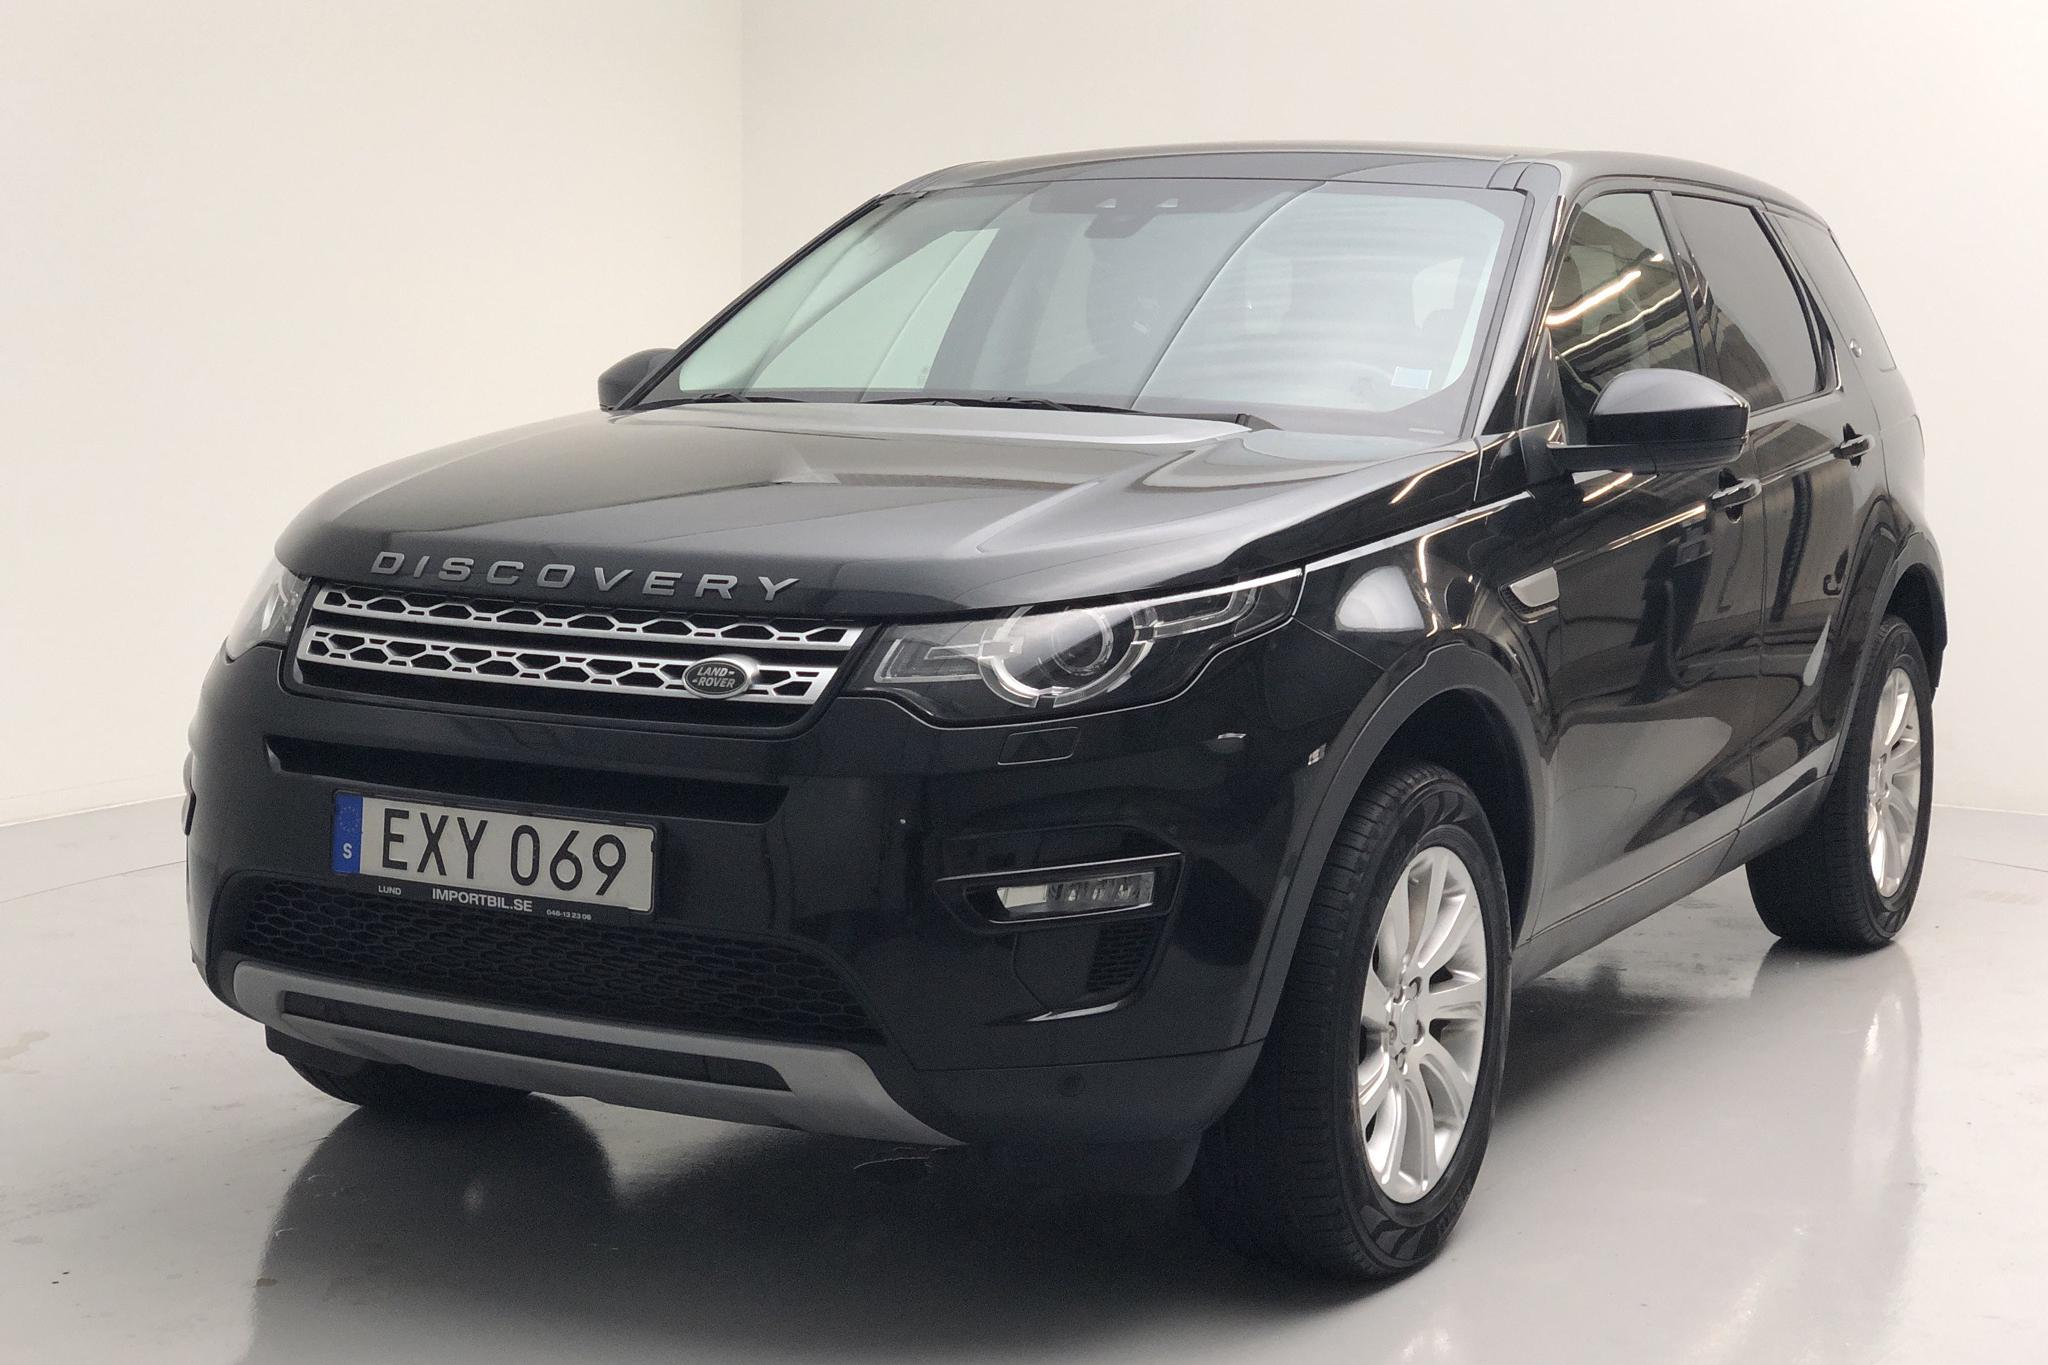 Land Rover Discovery Sport 2.2 SD4 HSE  (150hk) - 13 600 mil - Manuell - svart - 2015